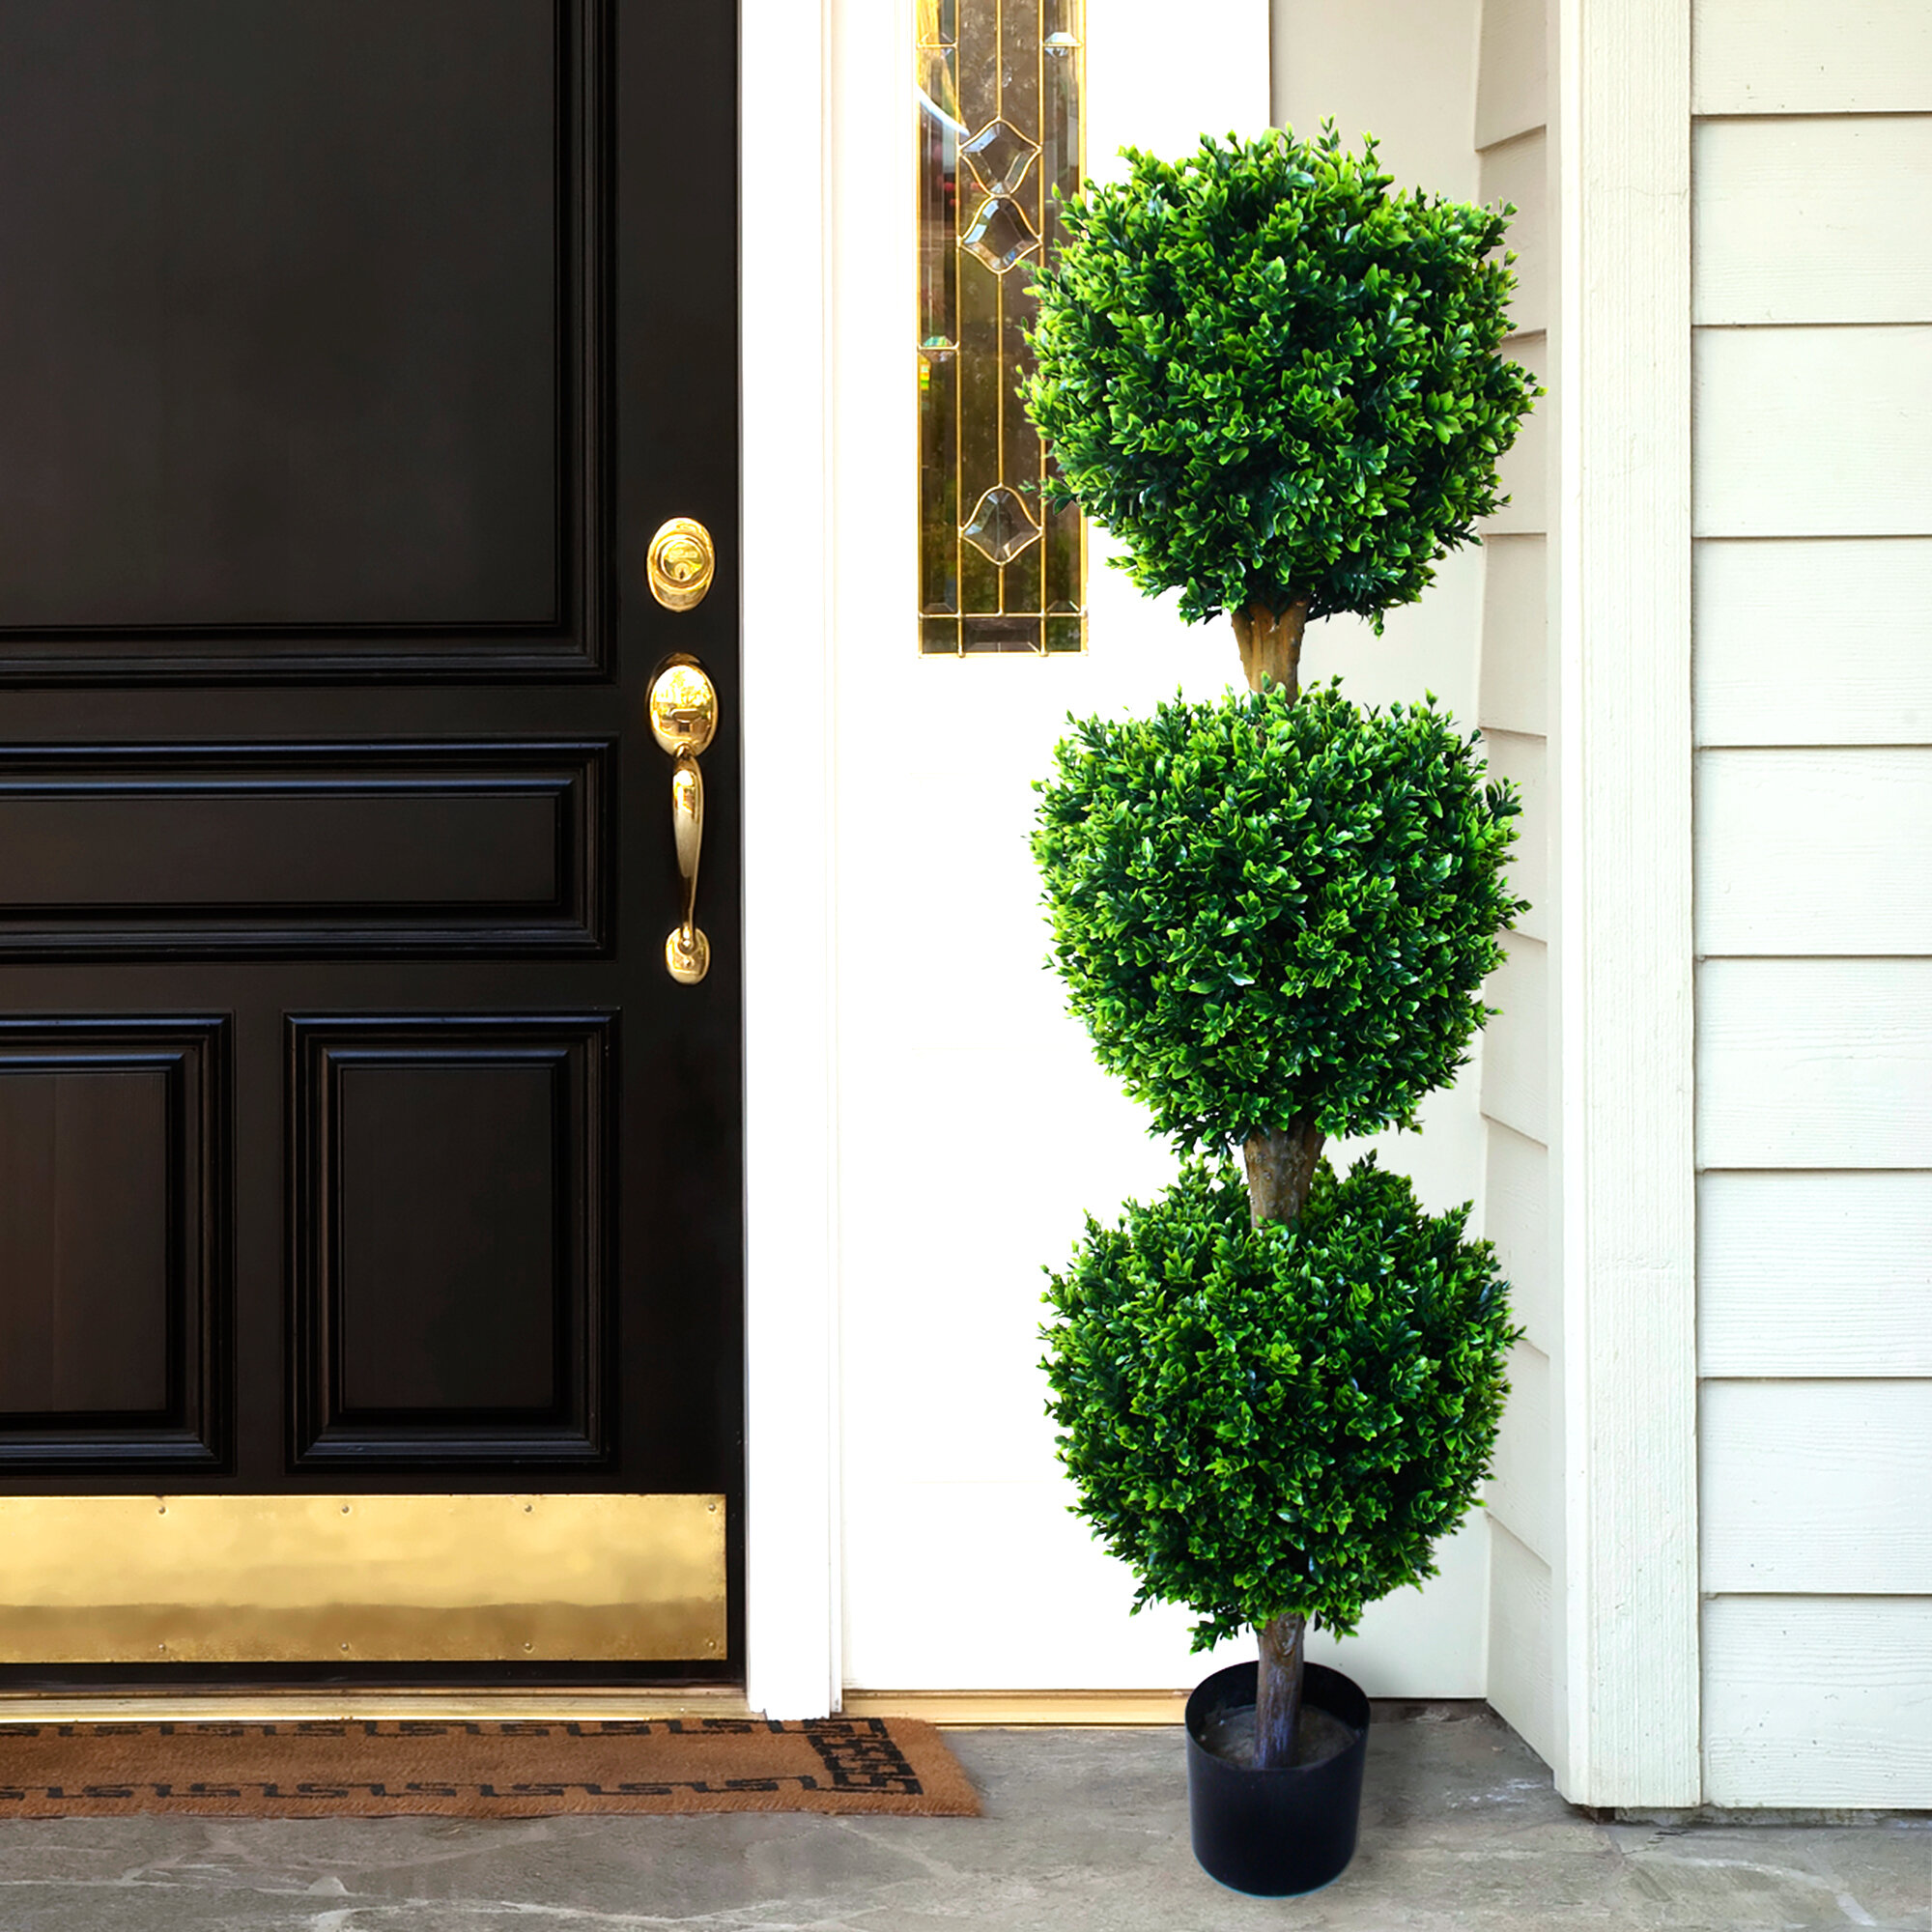 Darby Home Co Brooklyn Floor Boxwood Topiary In Pot Reviews Wayfair